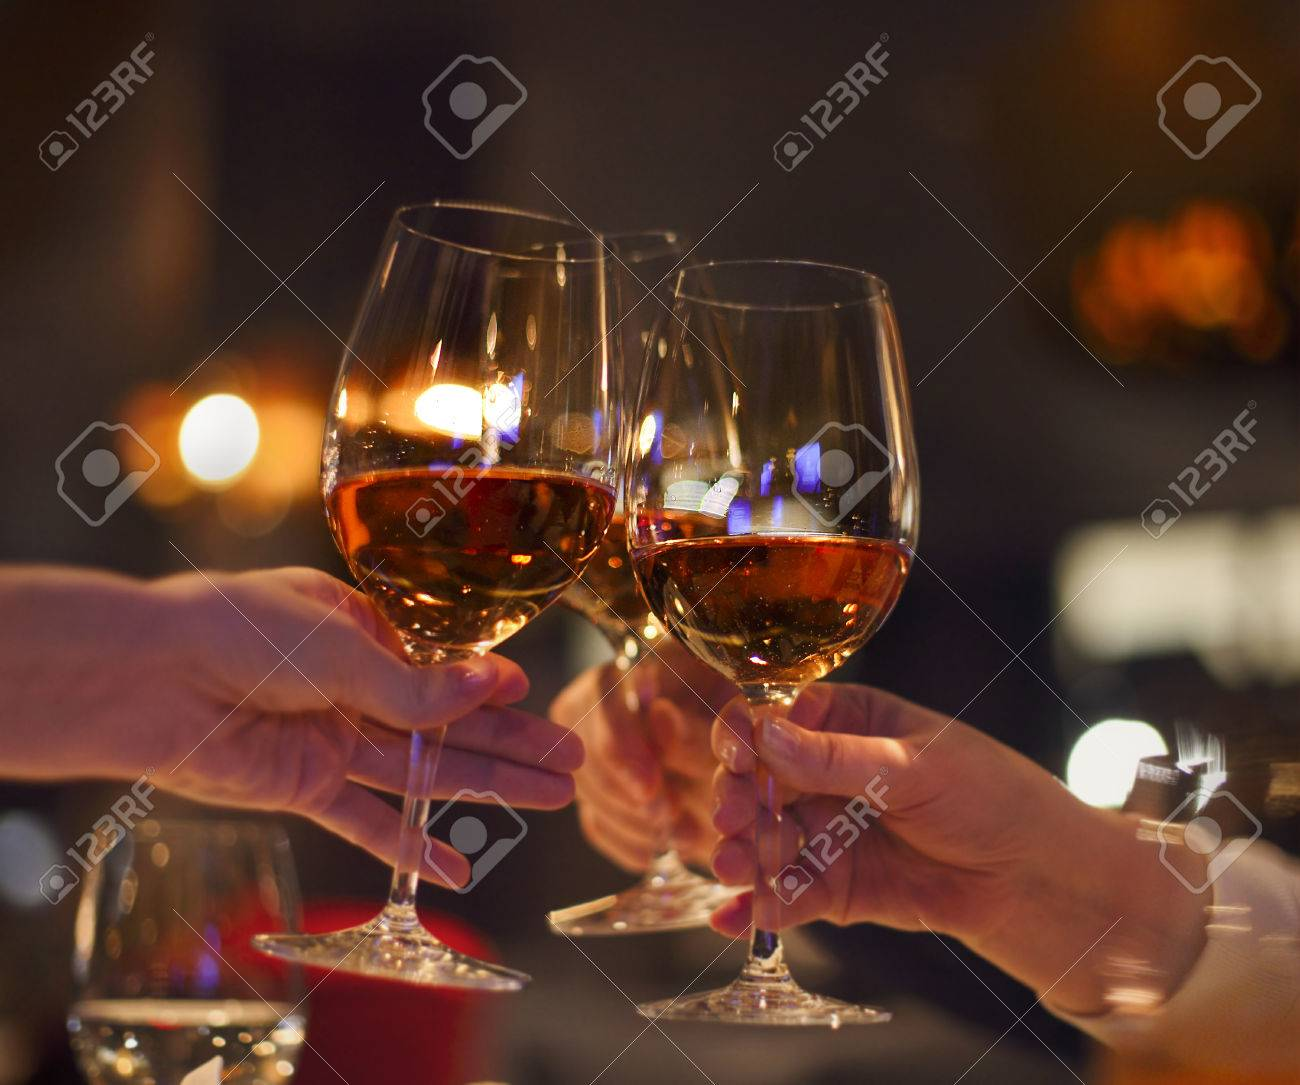 Toast in restaurant with full glasses of rose wine. Celebration concept - 47008383